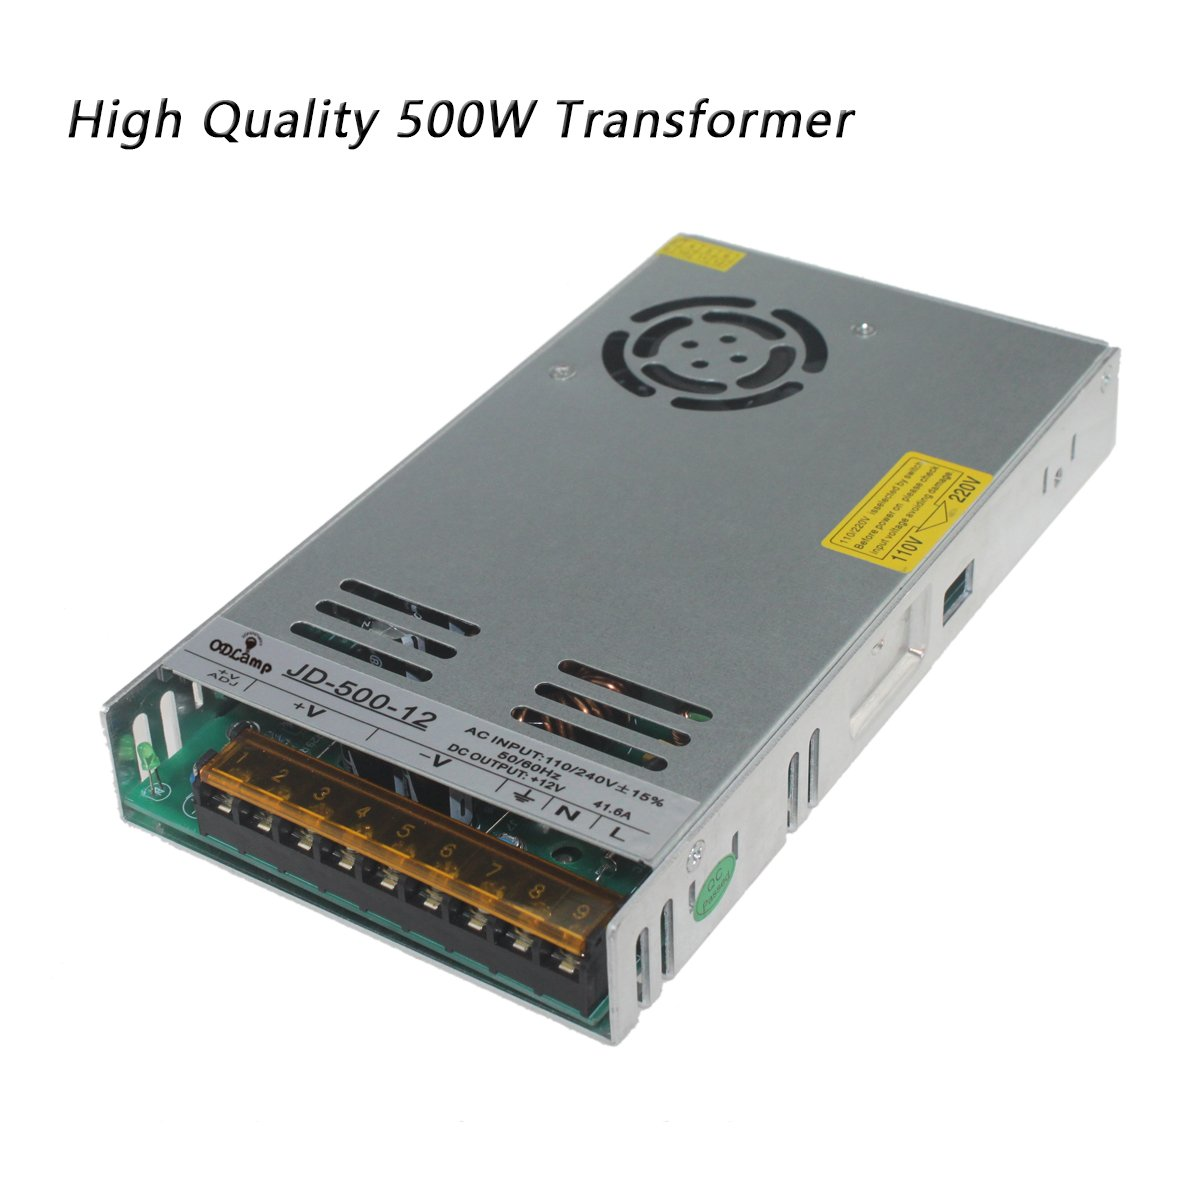 DC 12V 120W 250W 400W 500W Led Transformer Power Supply Driver Constant Voltage LED For Led Strip Led Module Lights (500W)